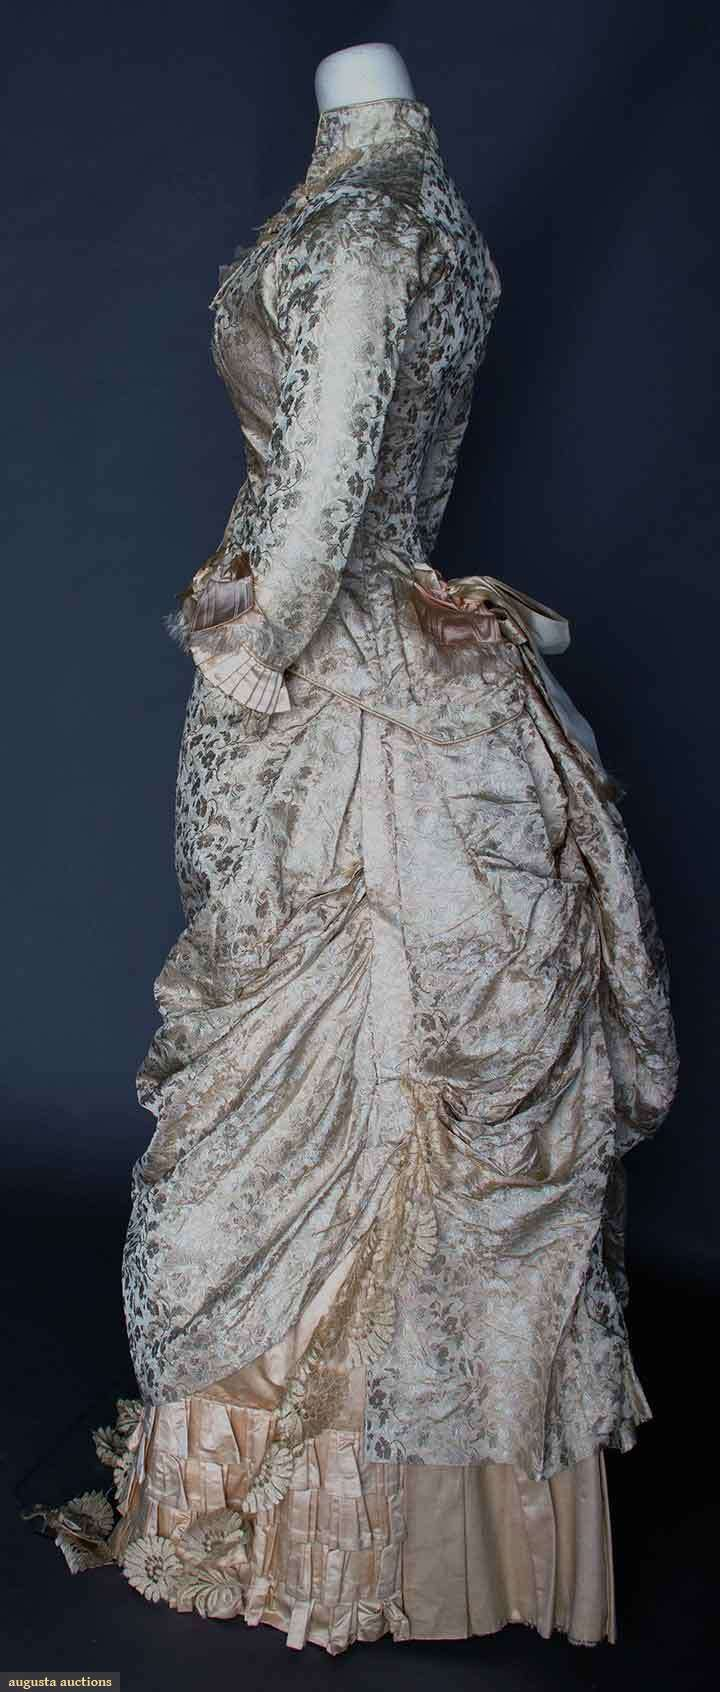 "SILK BROCADE WEDDING DRESS, 1880 2-piece, pale pink brocade flowers on cream silk faille, bodice & skirt trimmed w/ blonde lace, removable ruffled modesty neckpiece, cotton, satin & buckram linings, B 32"", W 24"", Skirt L 42"""